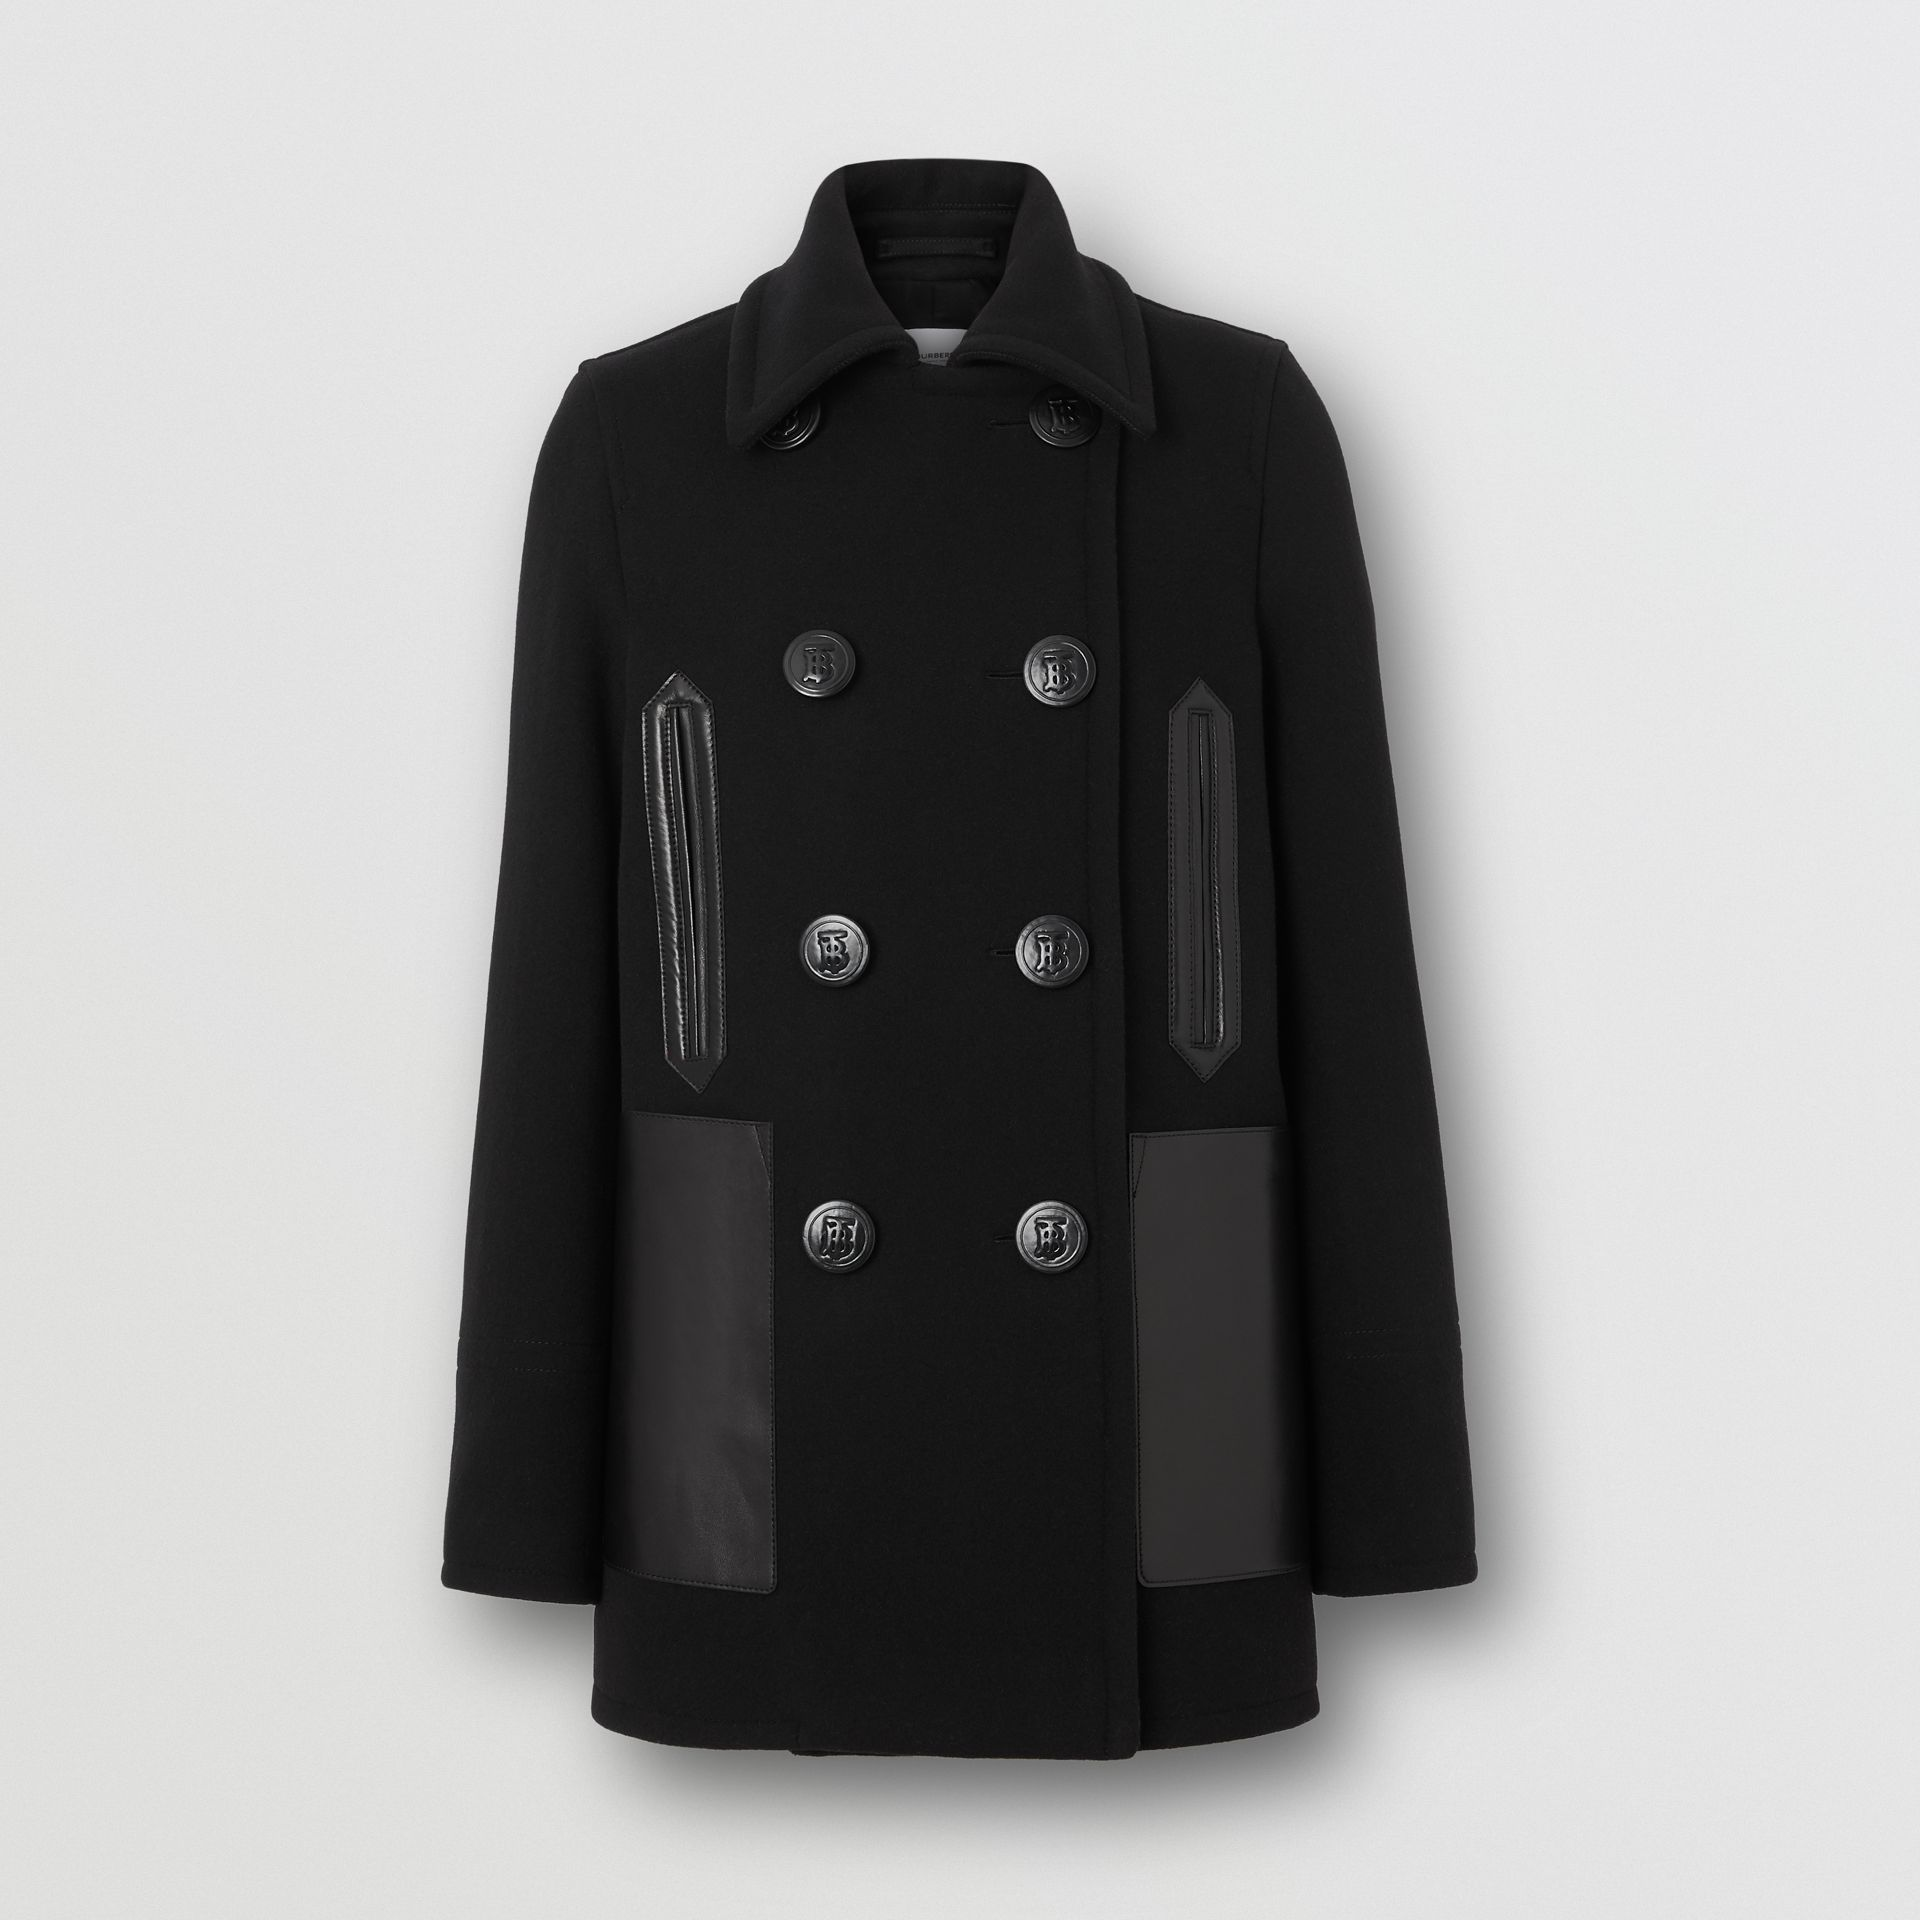 Lambskin Pocket Wool Blend Pea Coat in Black - Women | Burberry United Kingdom - gallery image 3